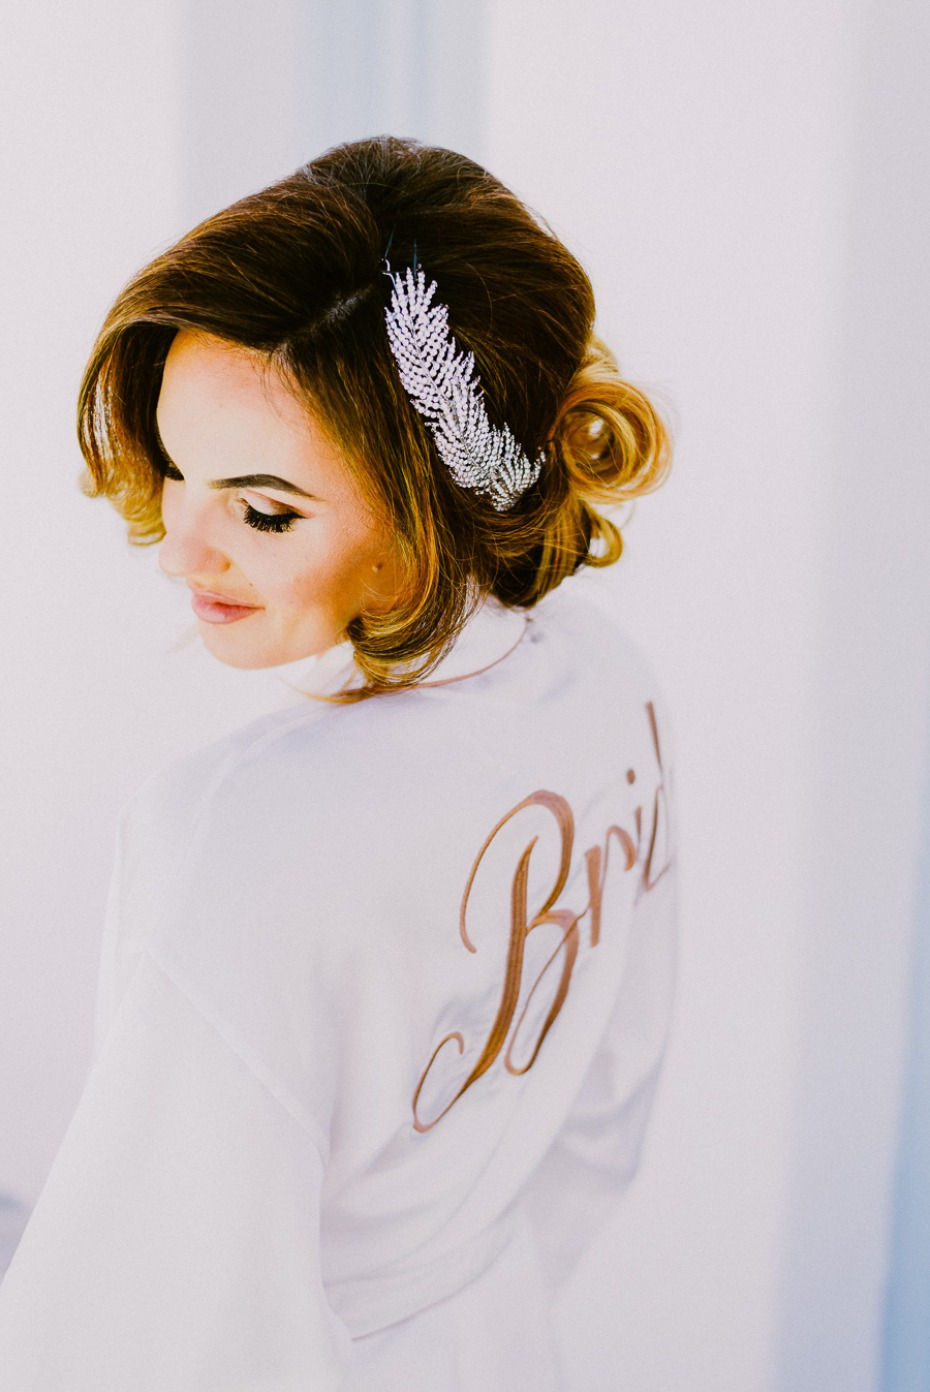 bridal getting ready look with elegant updo hair